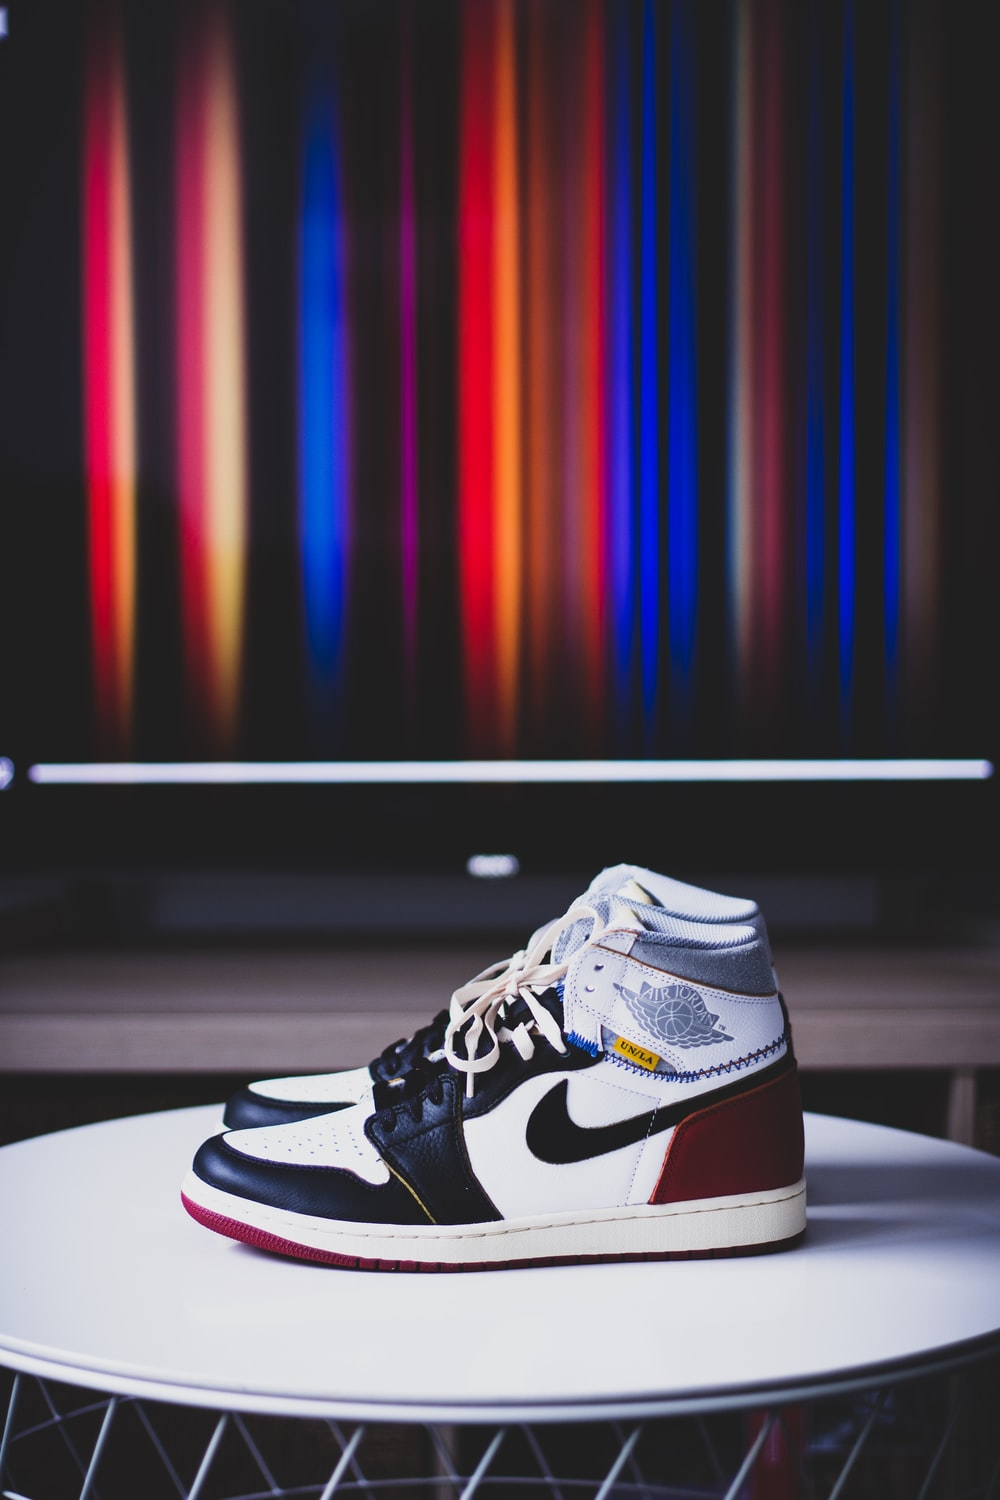 brand new f20ca bc155 Air Jordan 1 Pictures   Download Free Images on Unsplash